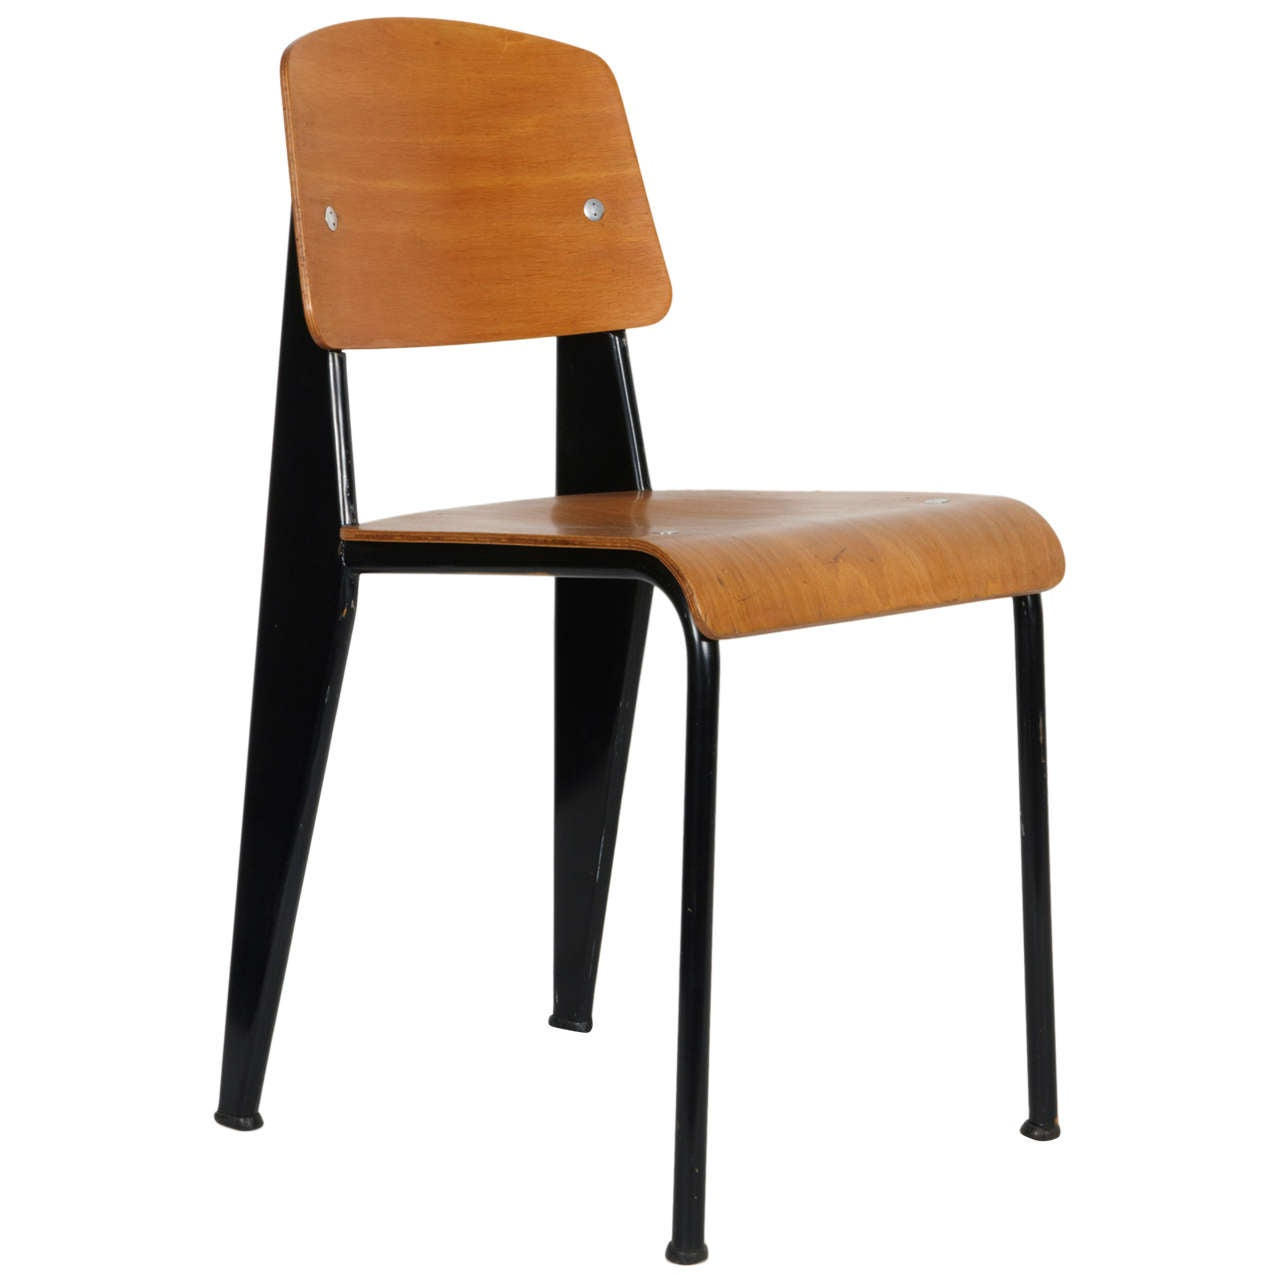 standard chair by jean prouv circa 1950 at 1stdibs. Black Bedroom Furniture Sets. Home Design Ideas